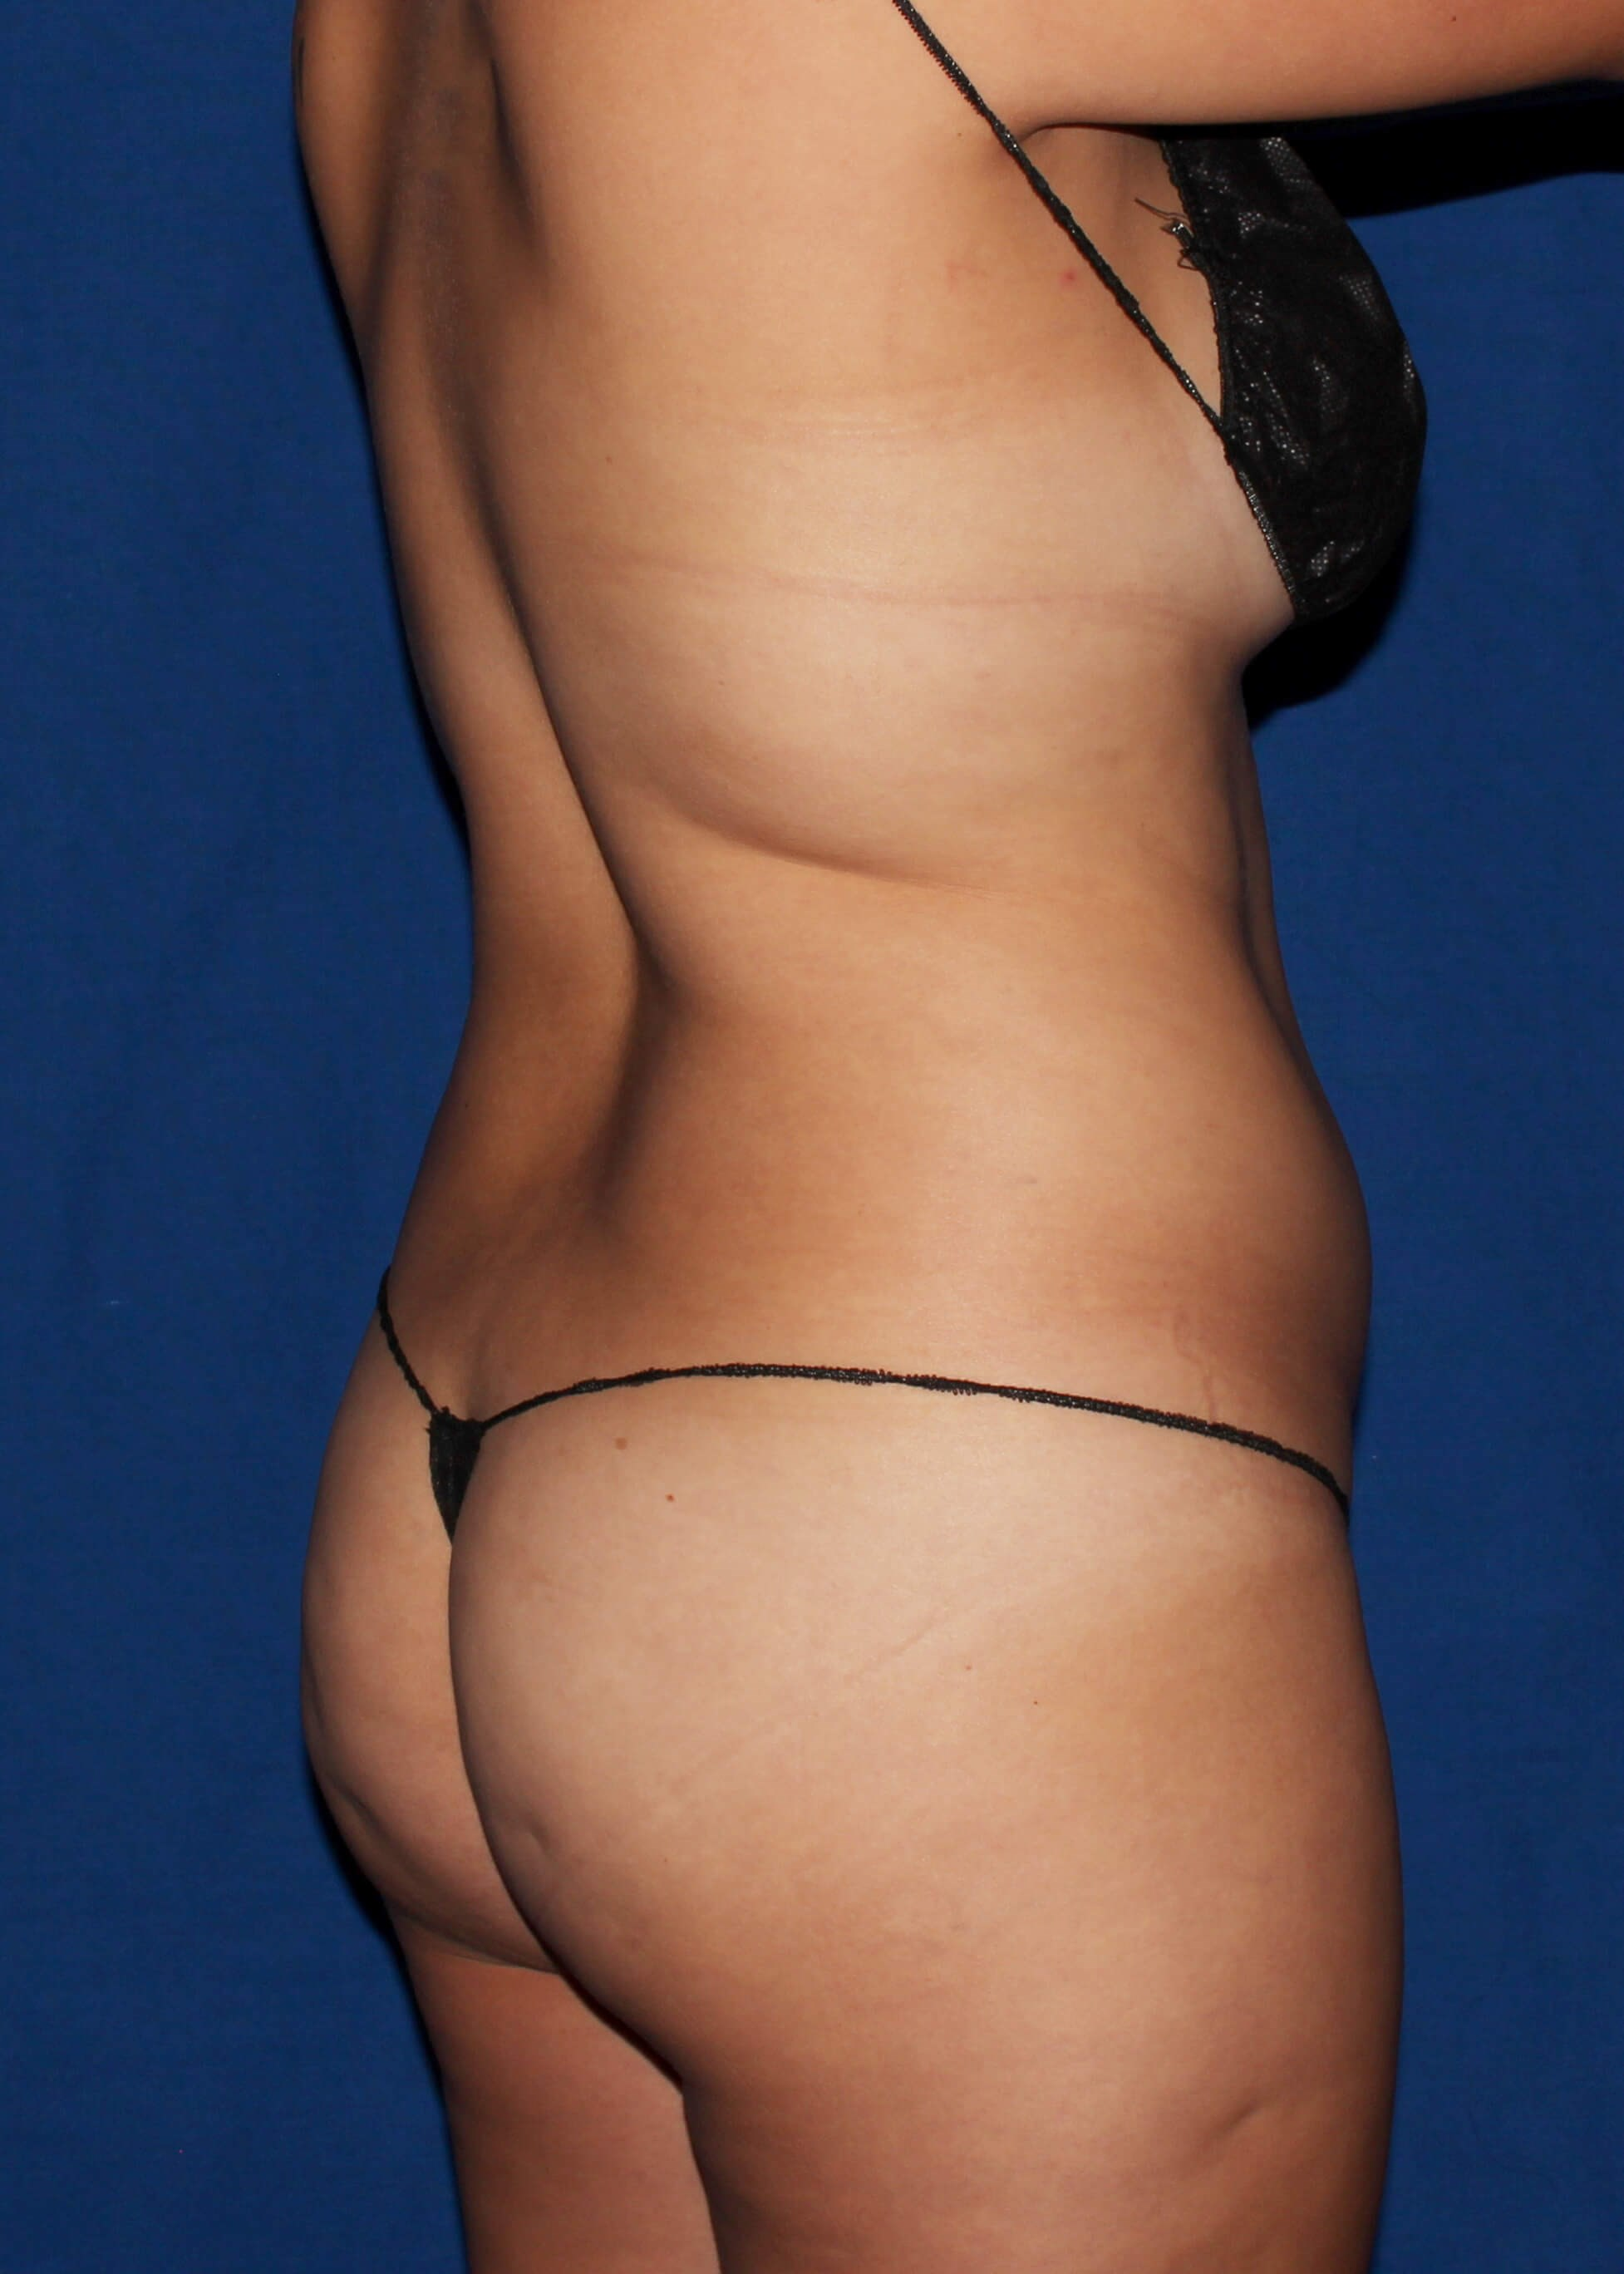 Full Torso Liposuction Before - RIGHT BACK SIDE VIEW